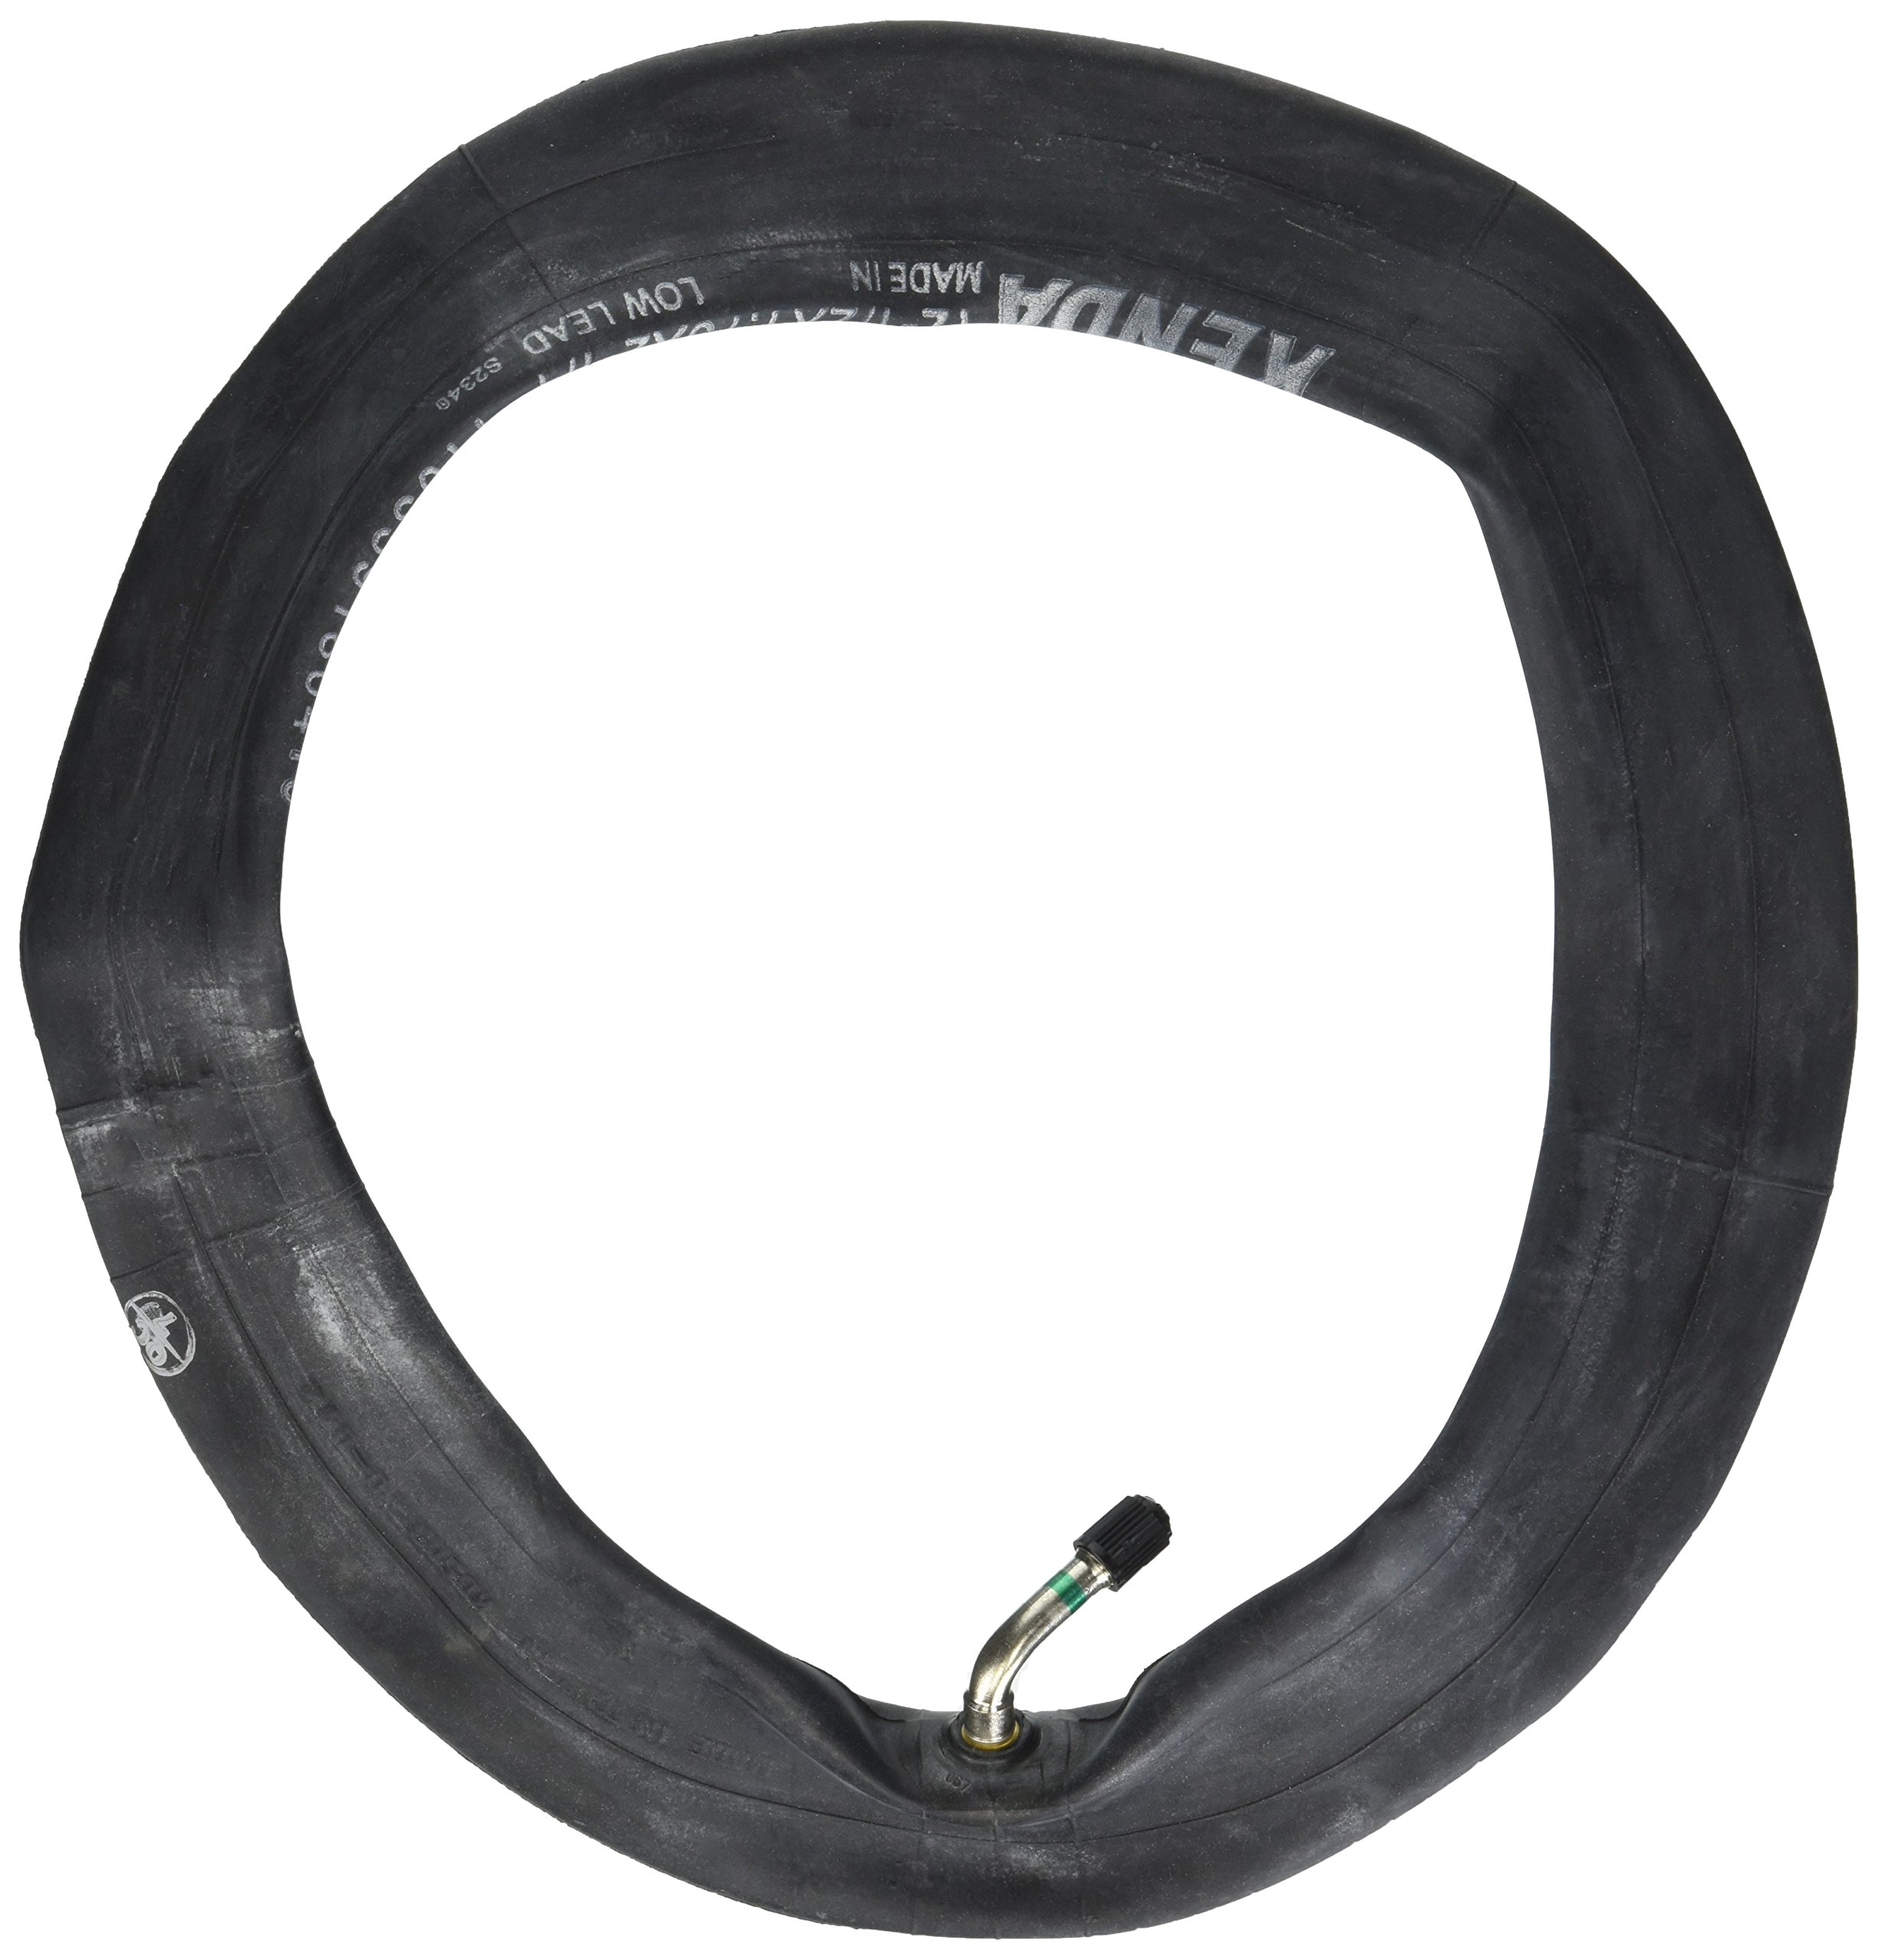 12-1/2''x1.75-2-1/4'' Inner Tube - Replacement Tube for Trikke or other 12-1/2'' scooter or bicycle wheels